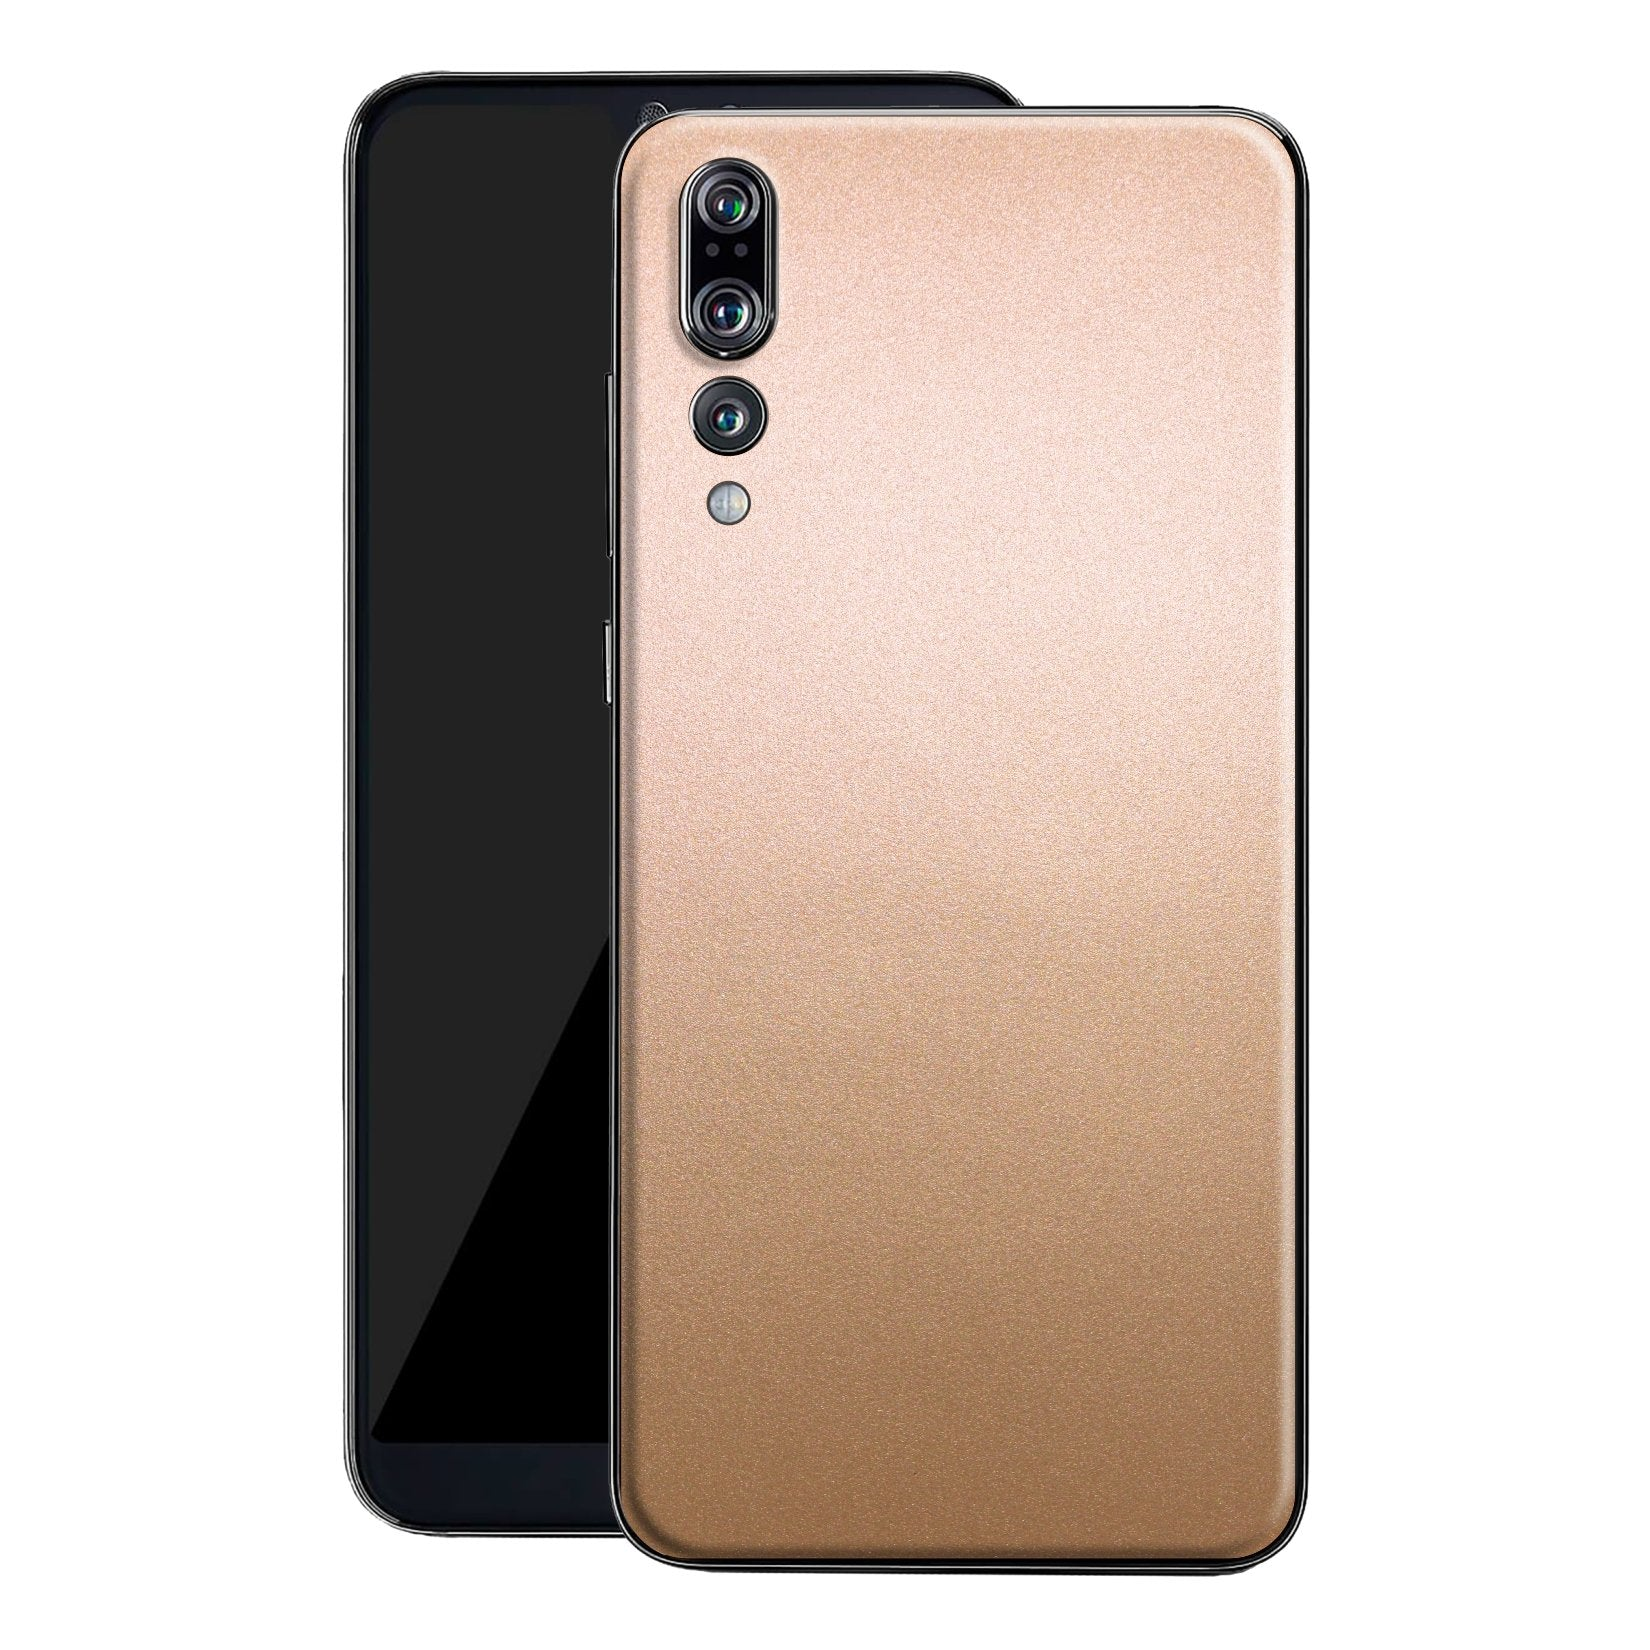 Huawei P20 PRO Luxuria Rose Gold Metallic Skin Wrap Decal Protector | EasySkinz